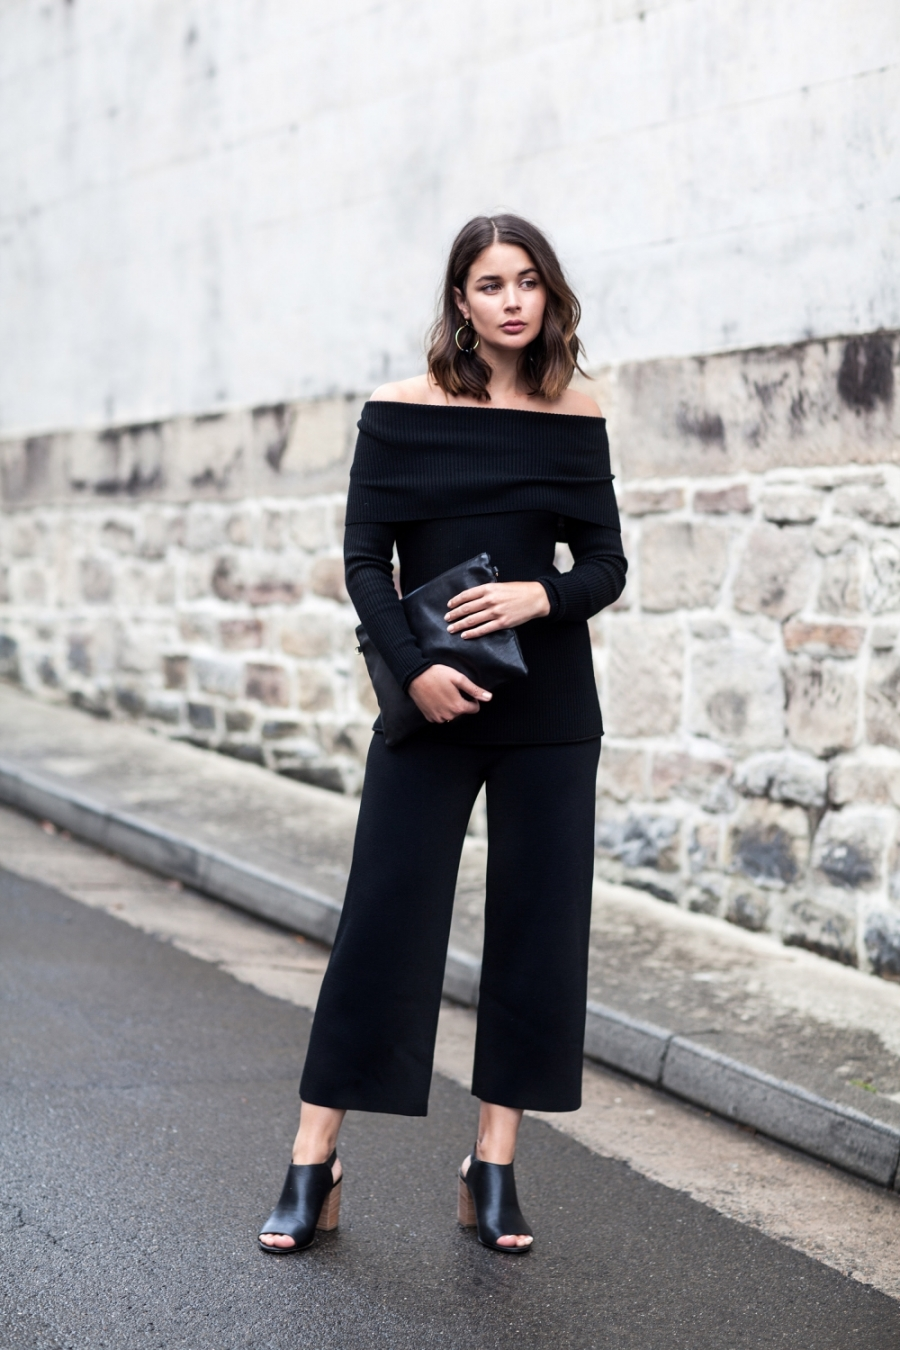 Sara Donaldson is rocking this trendy off the shoulder sweater, paired with black culottes and heeled sandals. This look is unique and authentic; a perfect statement knitwear look. Top/Trousers/Shoes: Country Road.